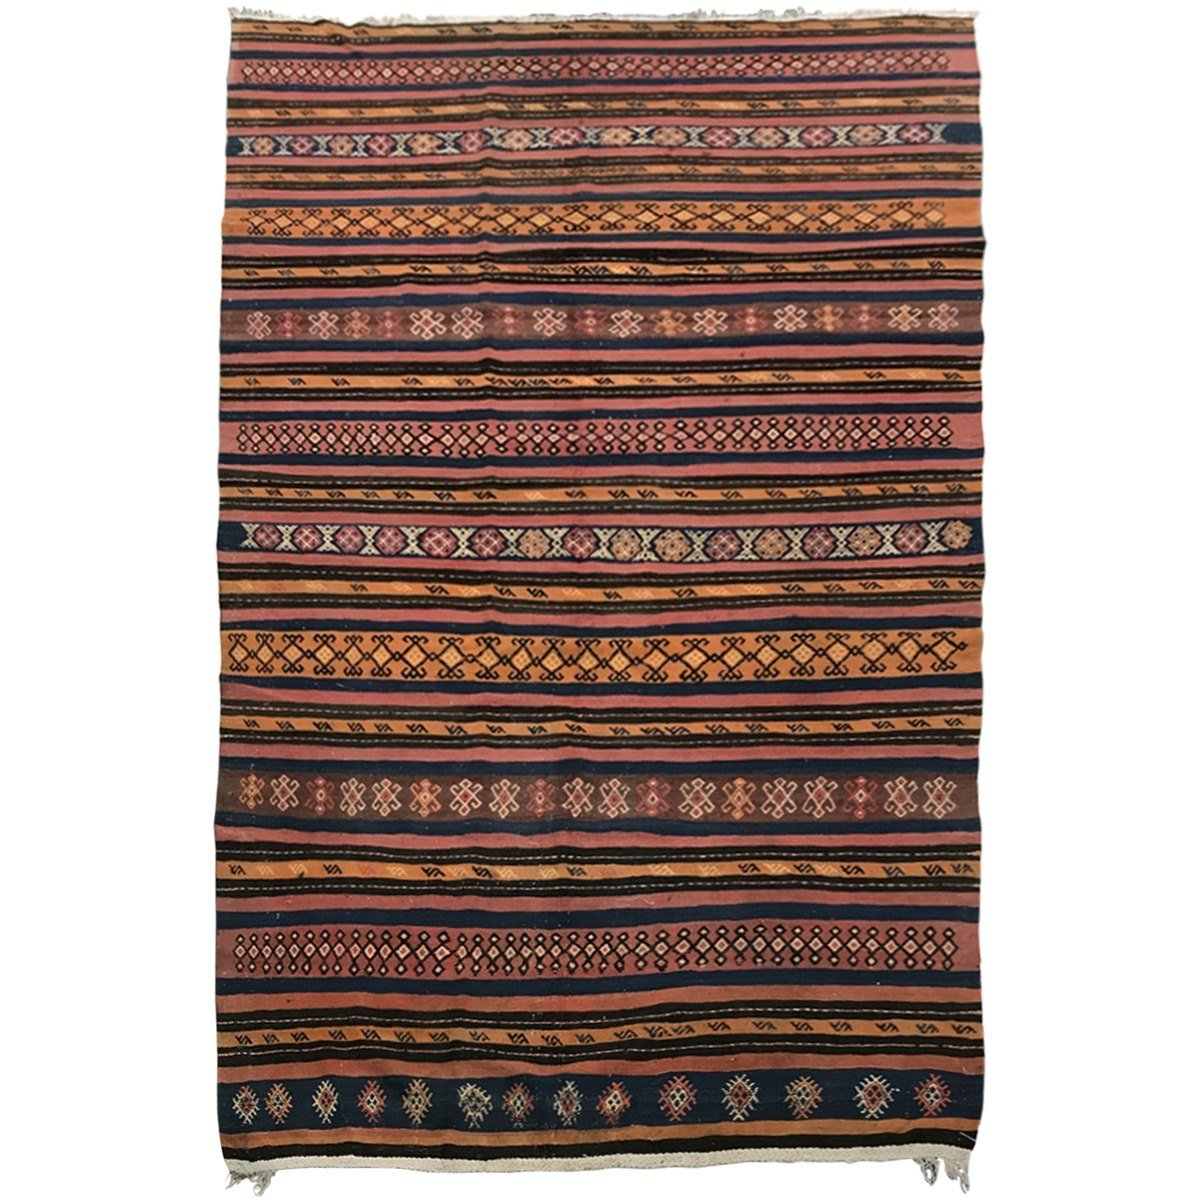 Woven Concepts 1920 Persian Baluch Wool Rug